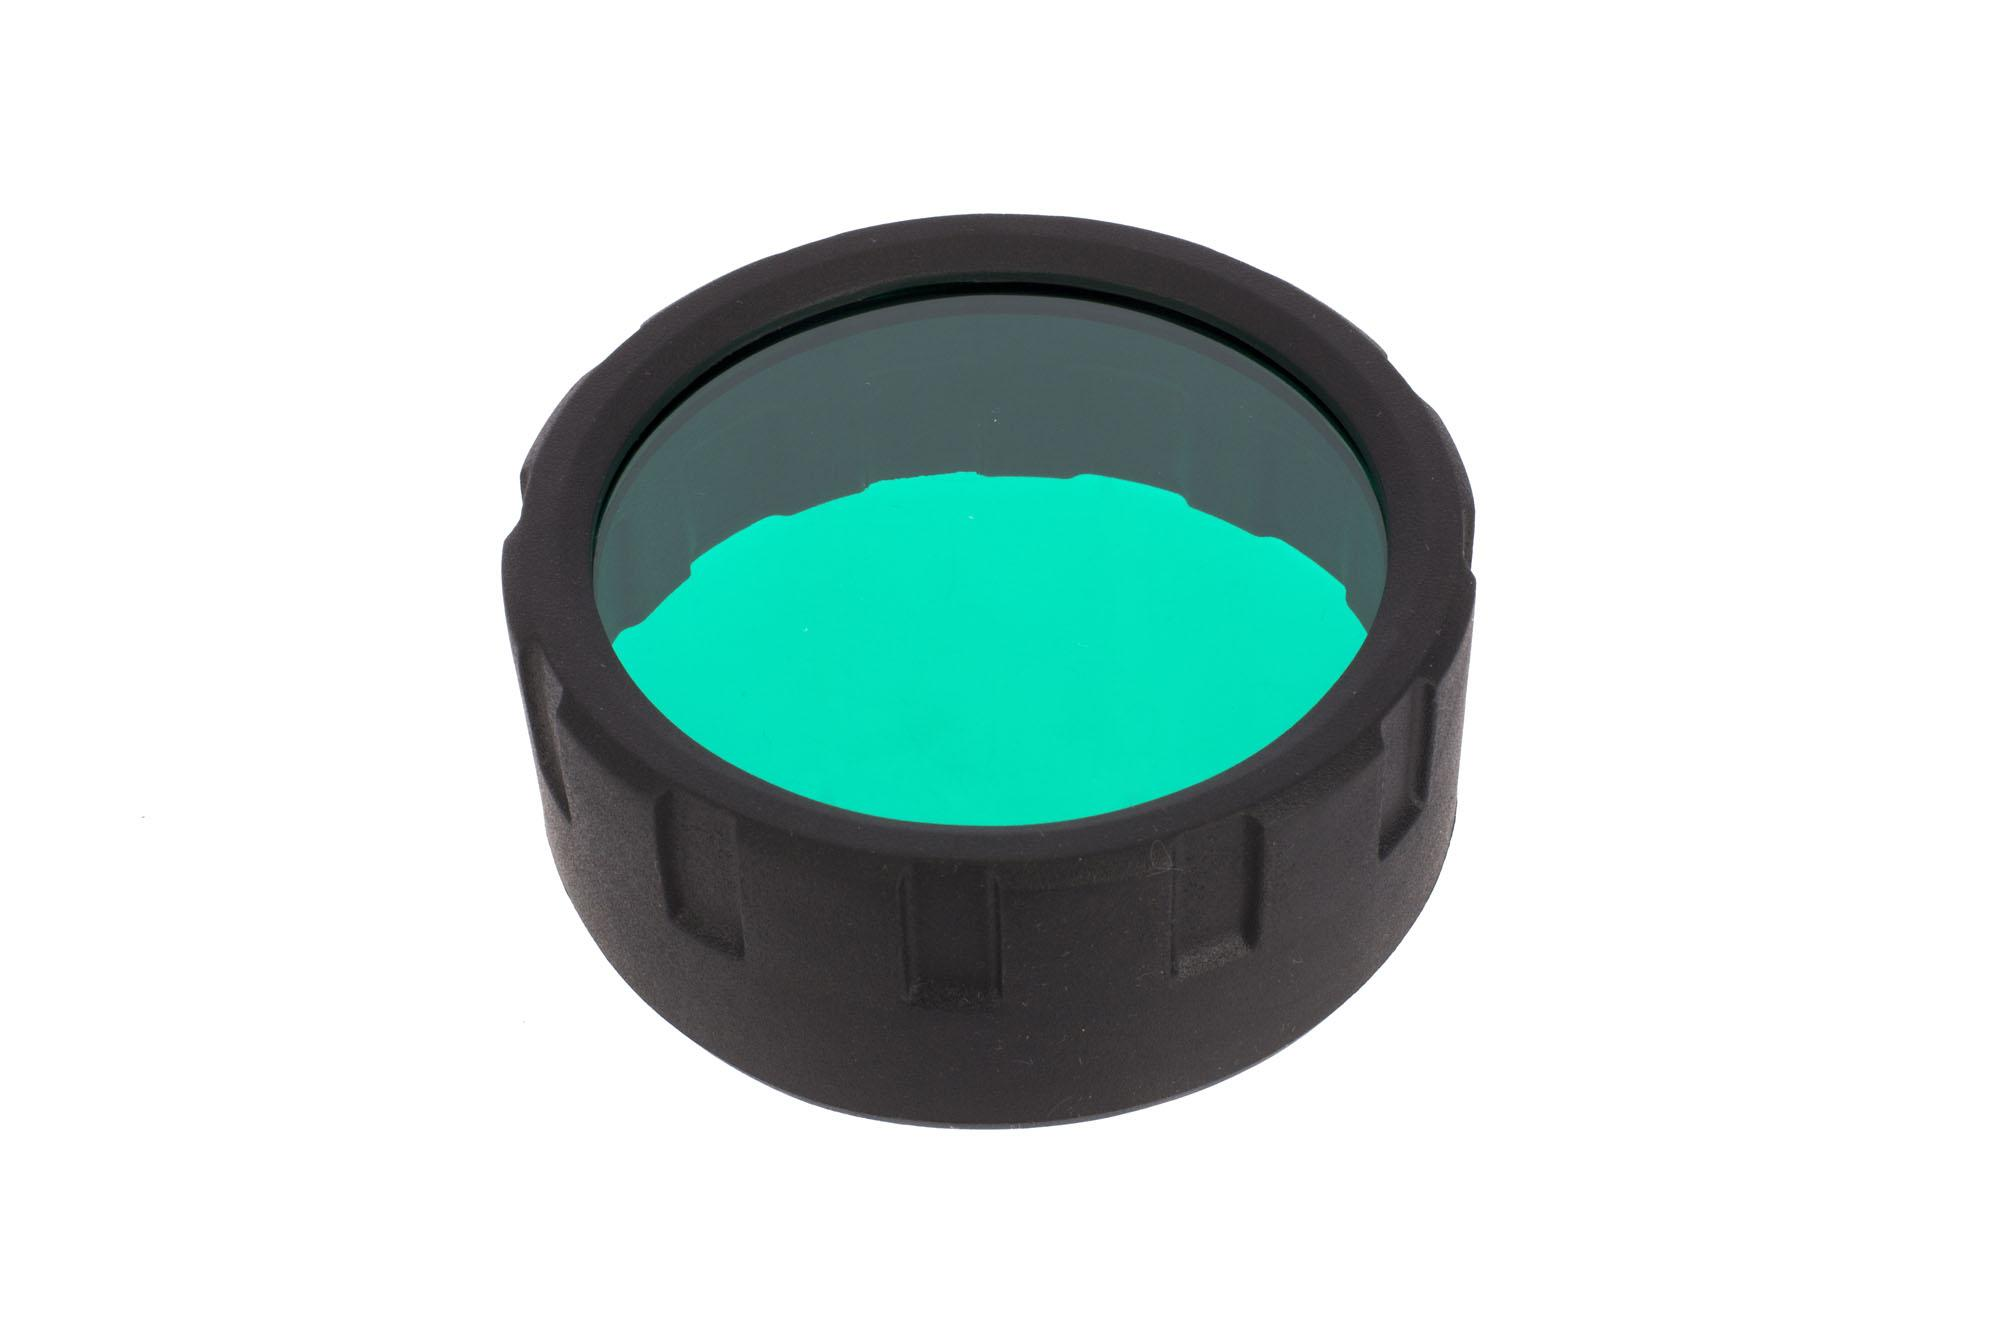 Streamlight WayPoint Red Filter for Alkaline Models